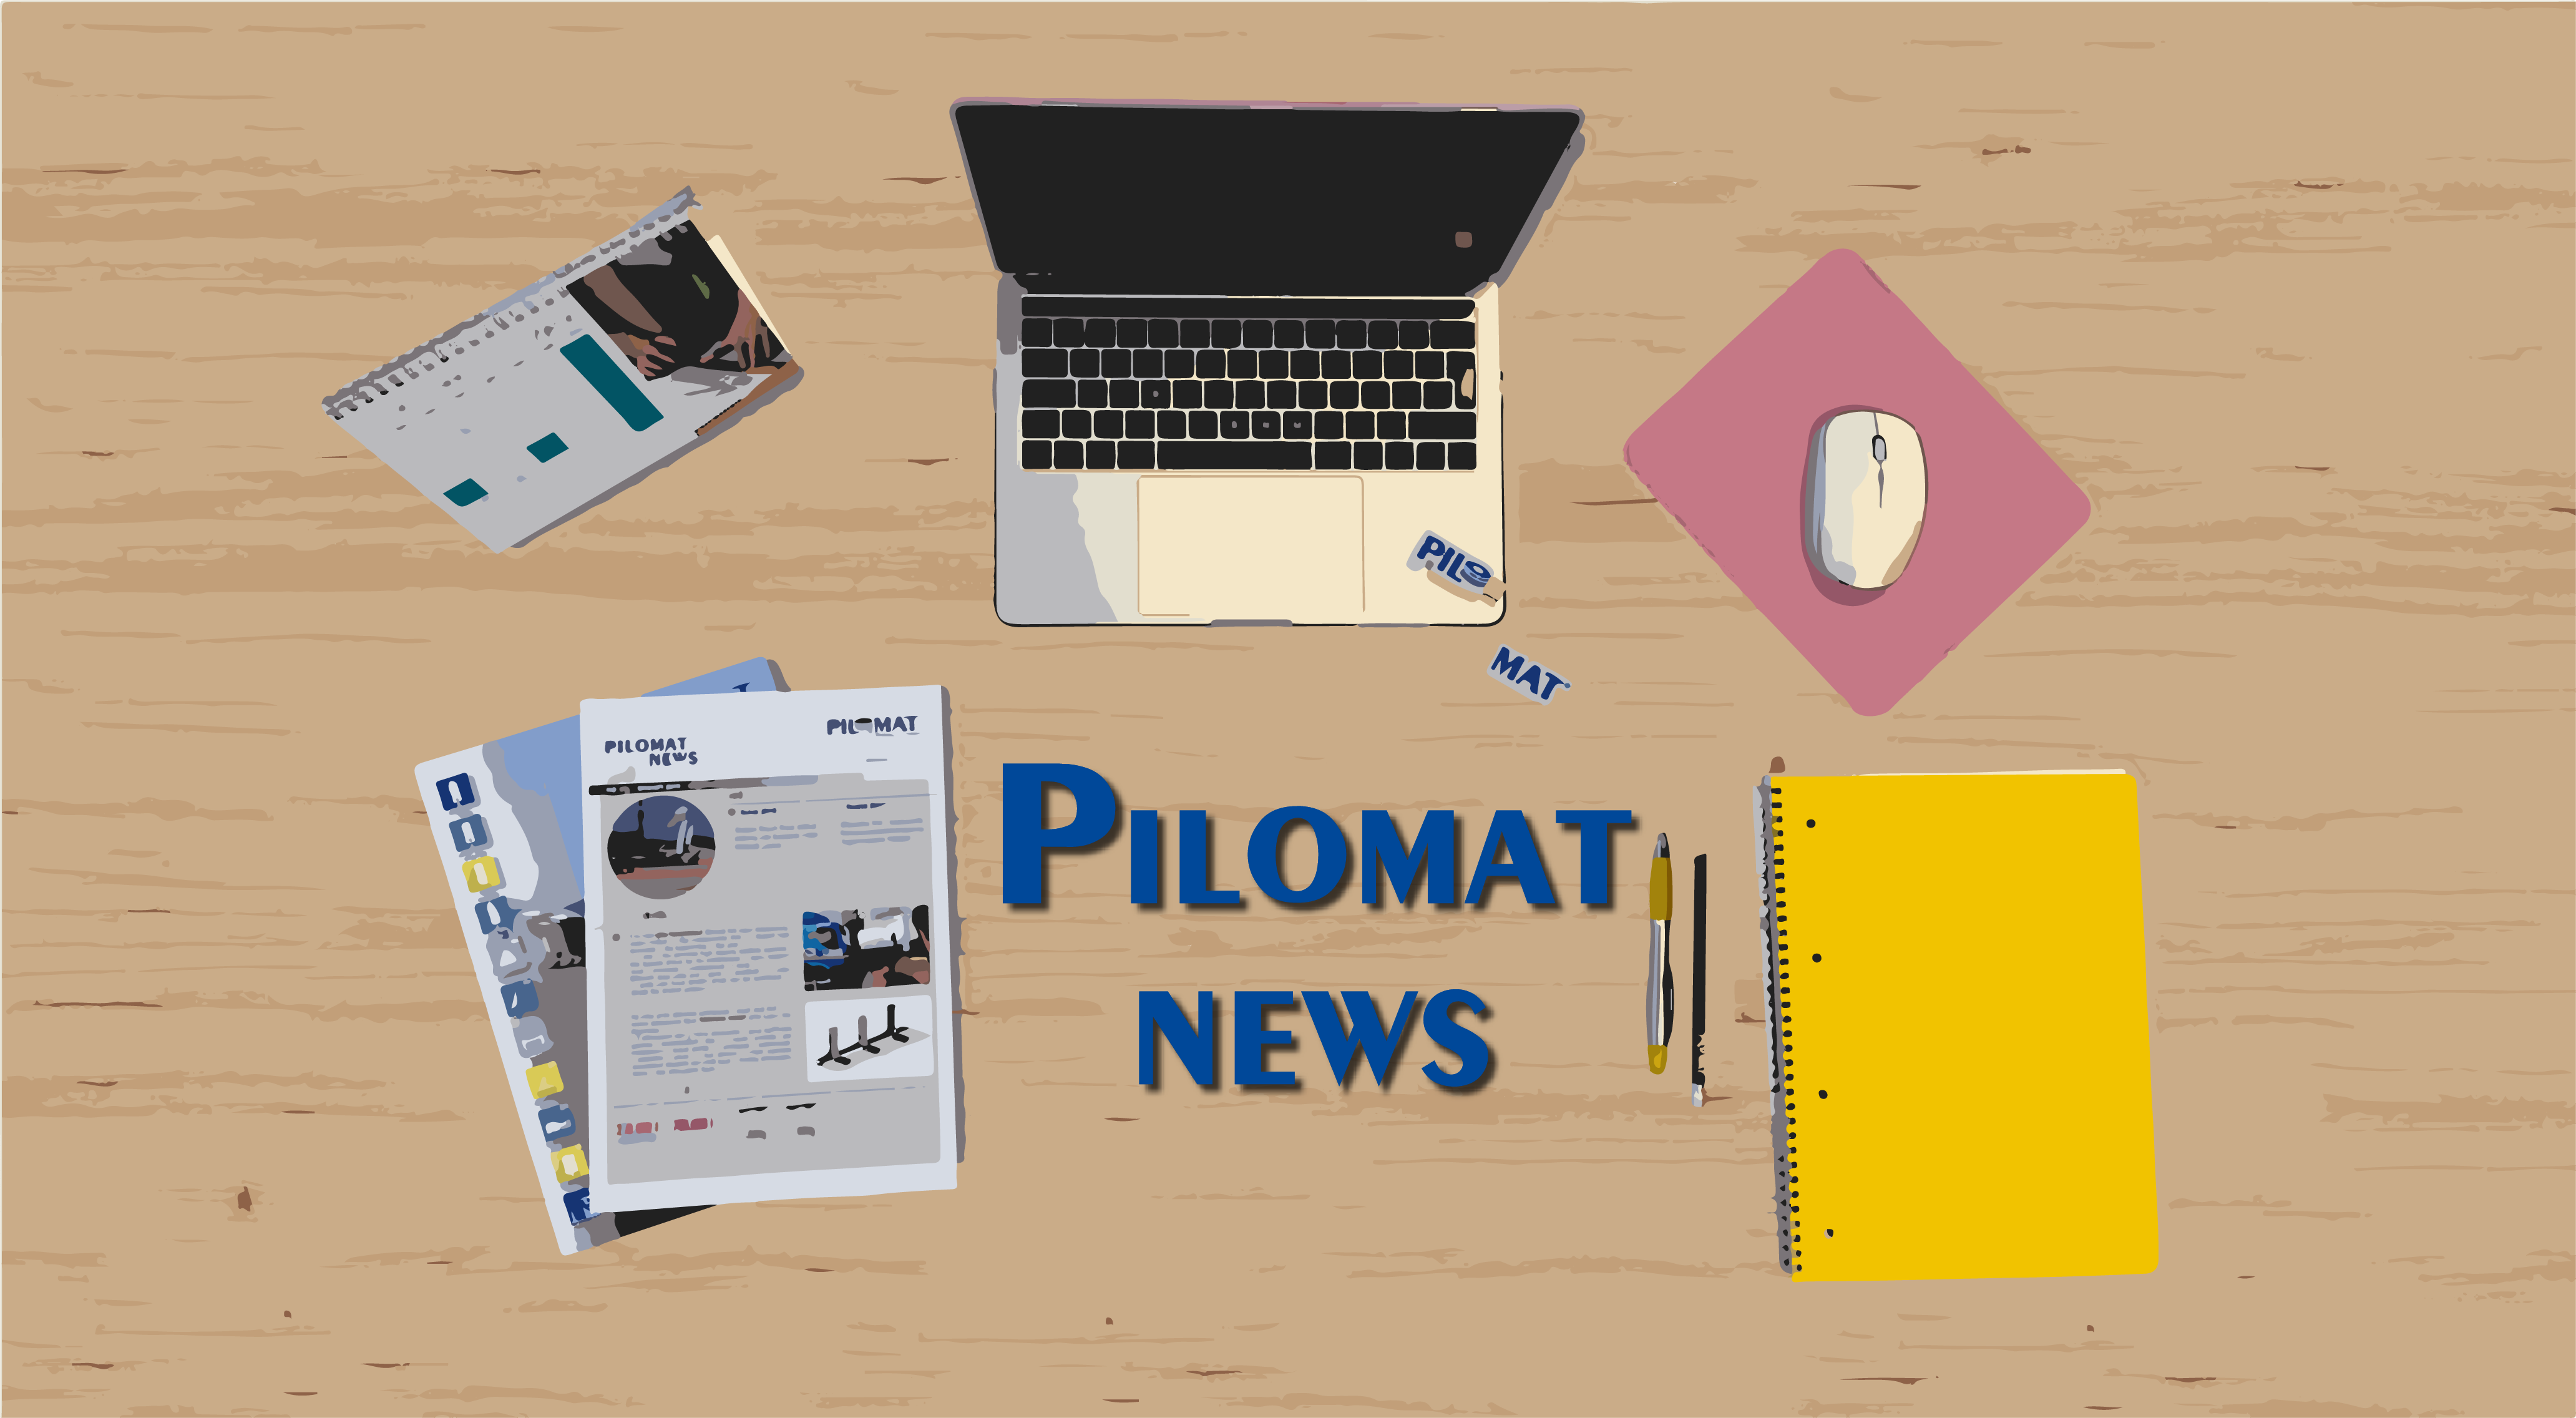 Pilomat News image showing a desk and the tools of the editor: laptop, calendar, papers and pen